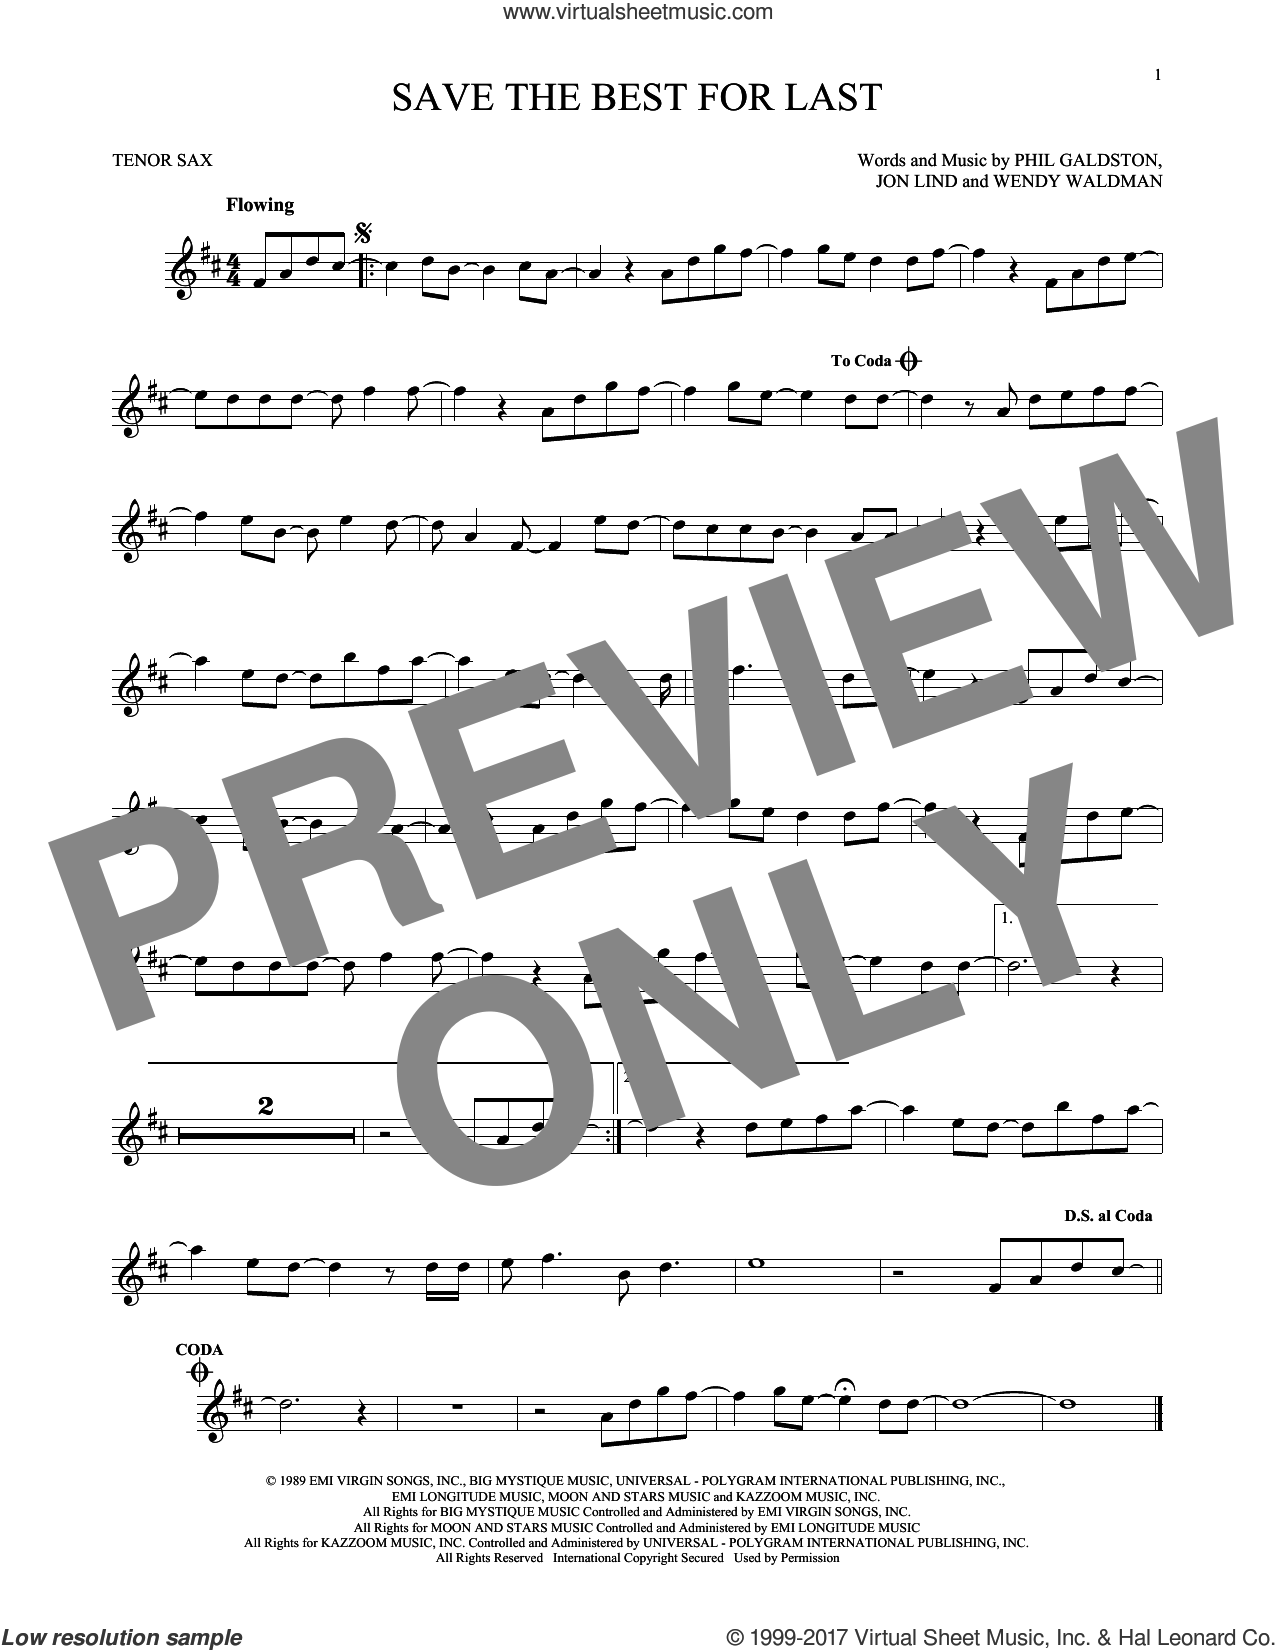 Save The Best For Last sheet music for tenor saxophone solo by Vanessa Williams, Jon Lind, Phil Galdston and Wendy Waldman, intermediate skill level